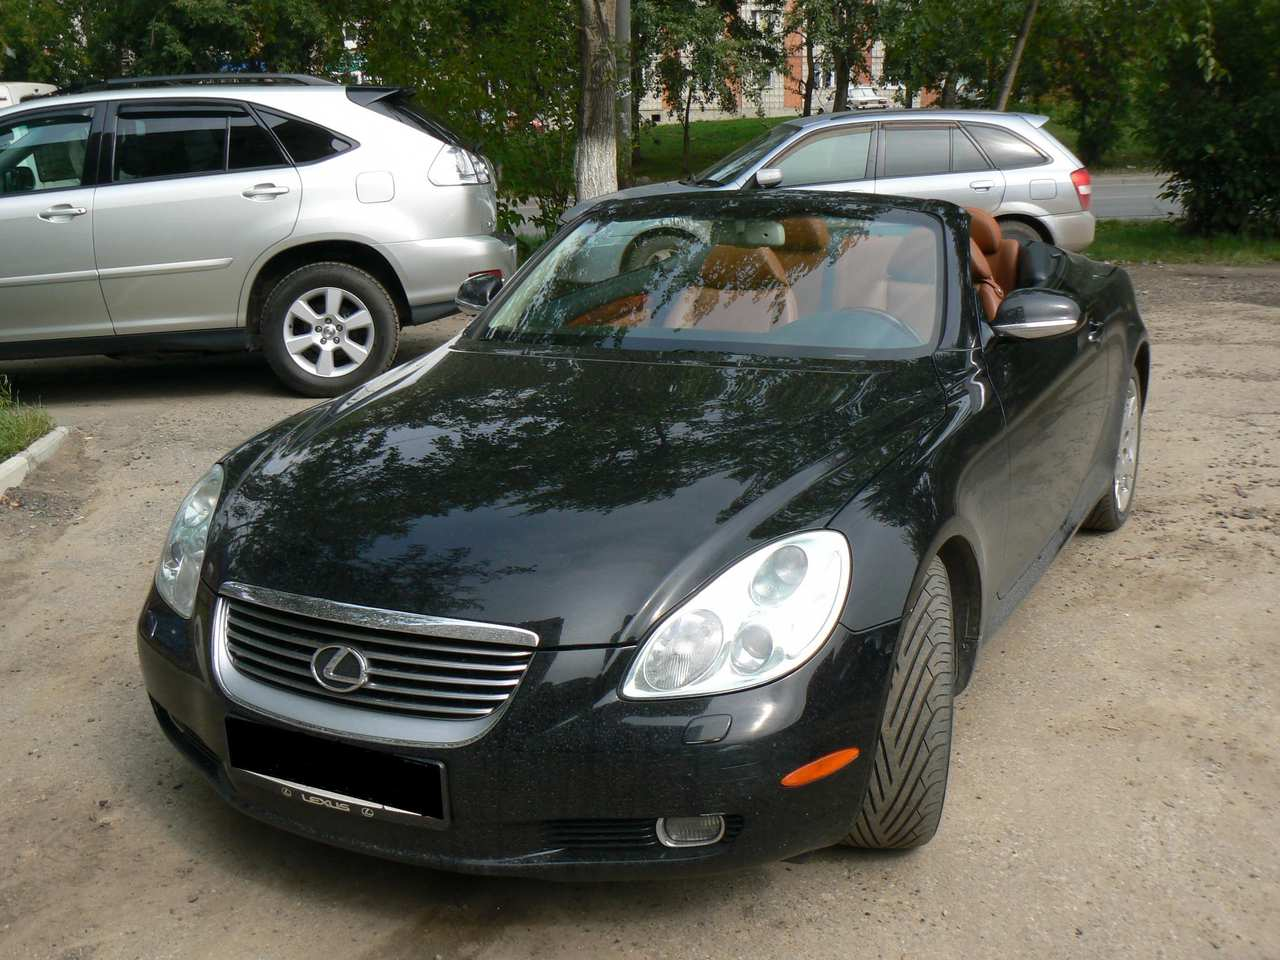 2005 lexus sc430 pictures gasoline fr or rr. Black Bedroom Furniture Sets. Home Design Ideas